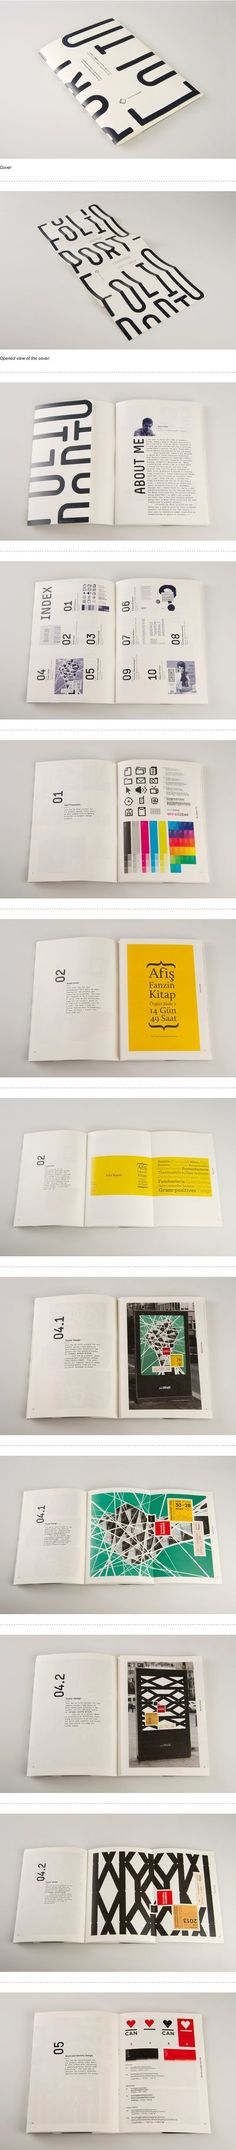 Idea for exhibition booklet ? Portfolio Booklet by Emre Ozbek intro infographic and number visual info->introduce briefly_: